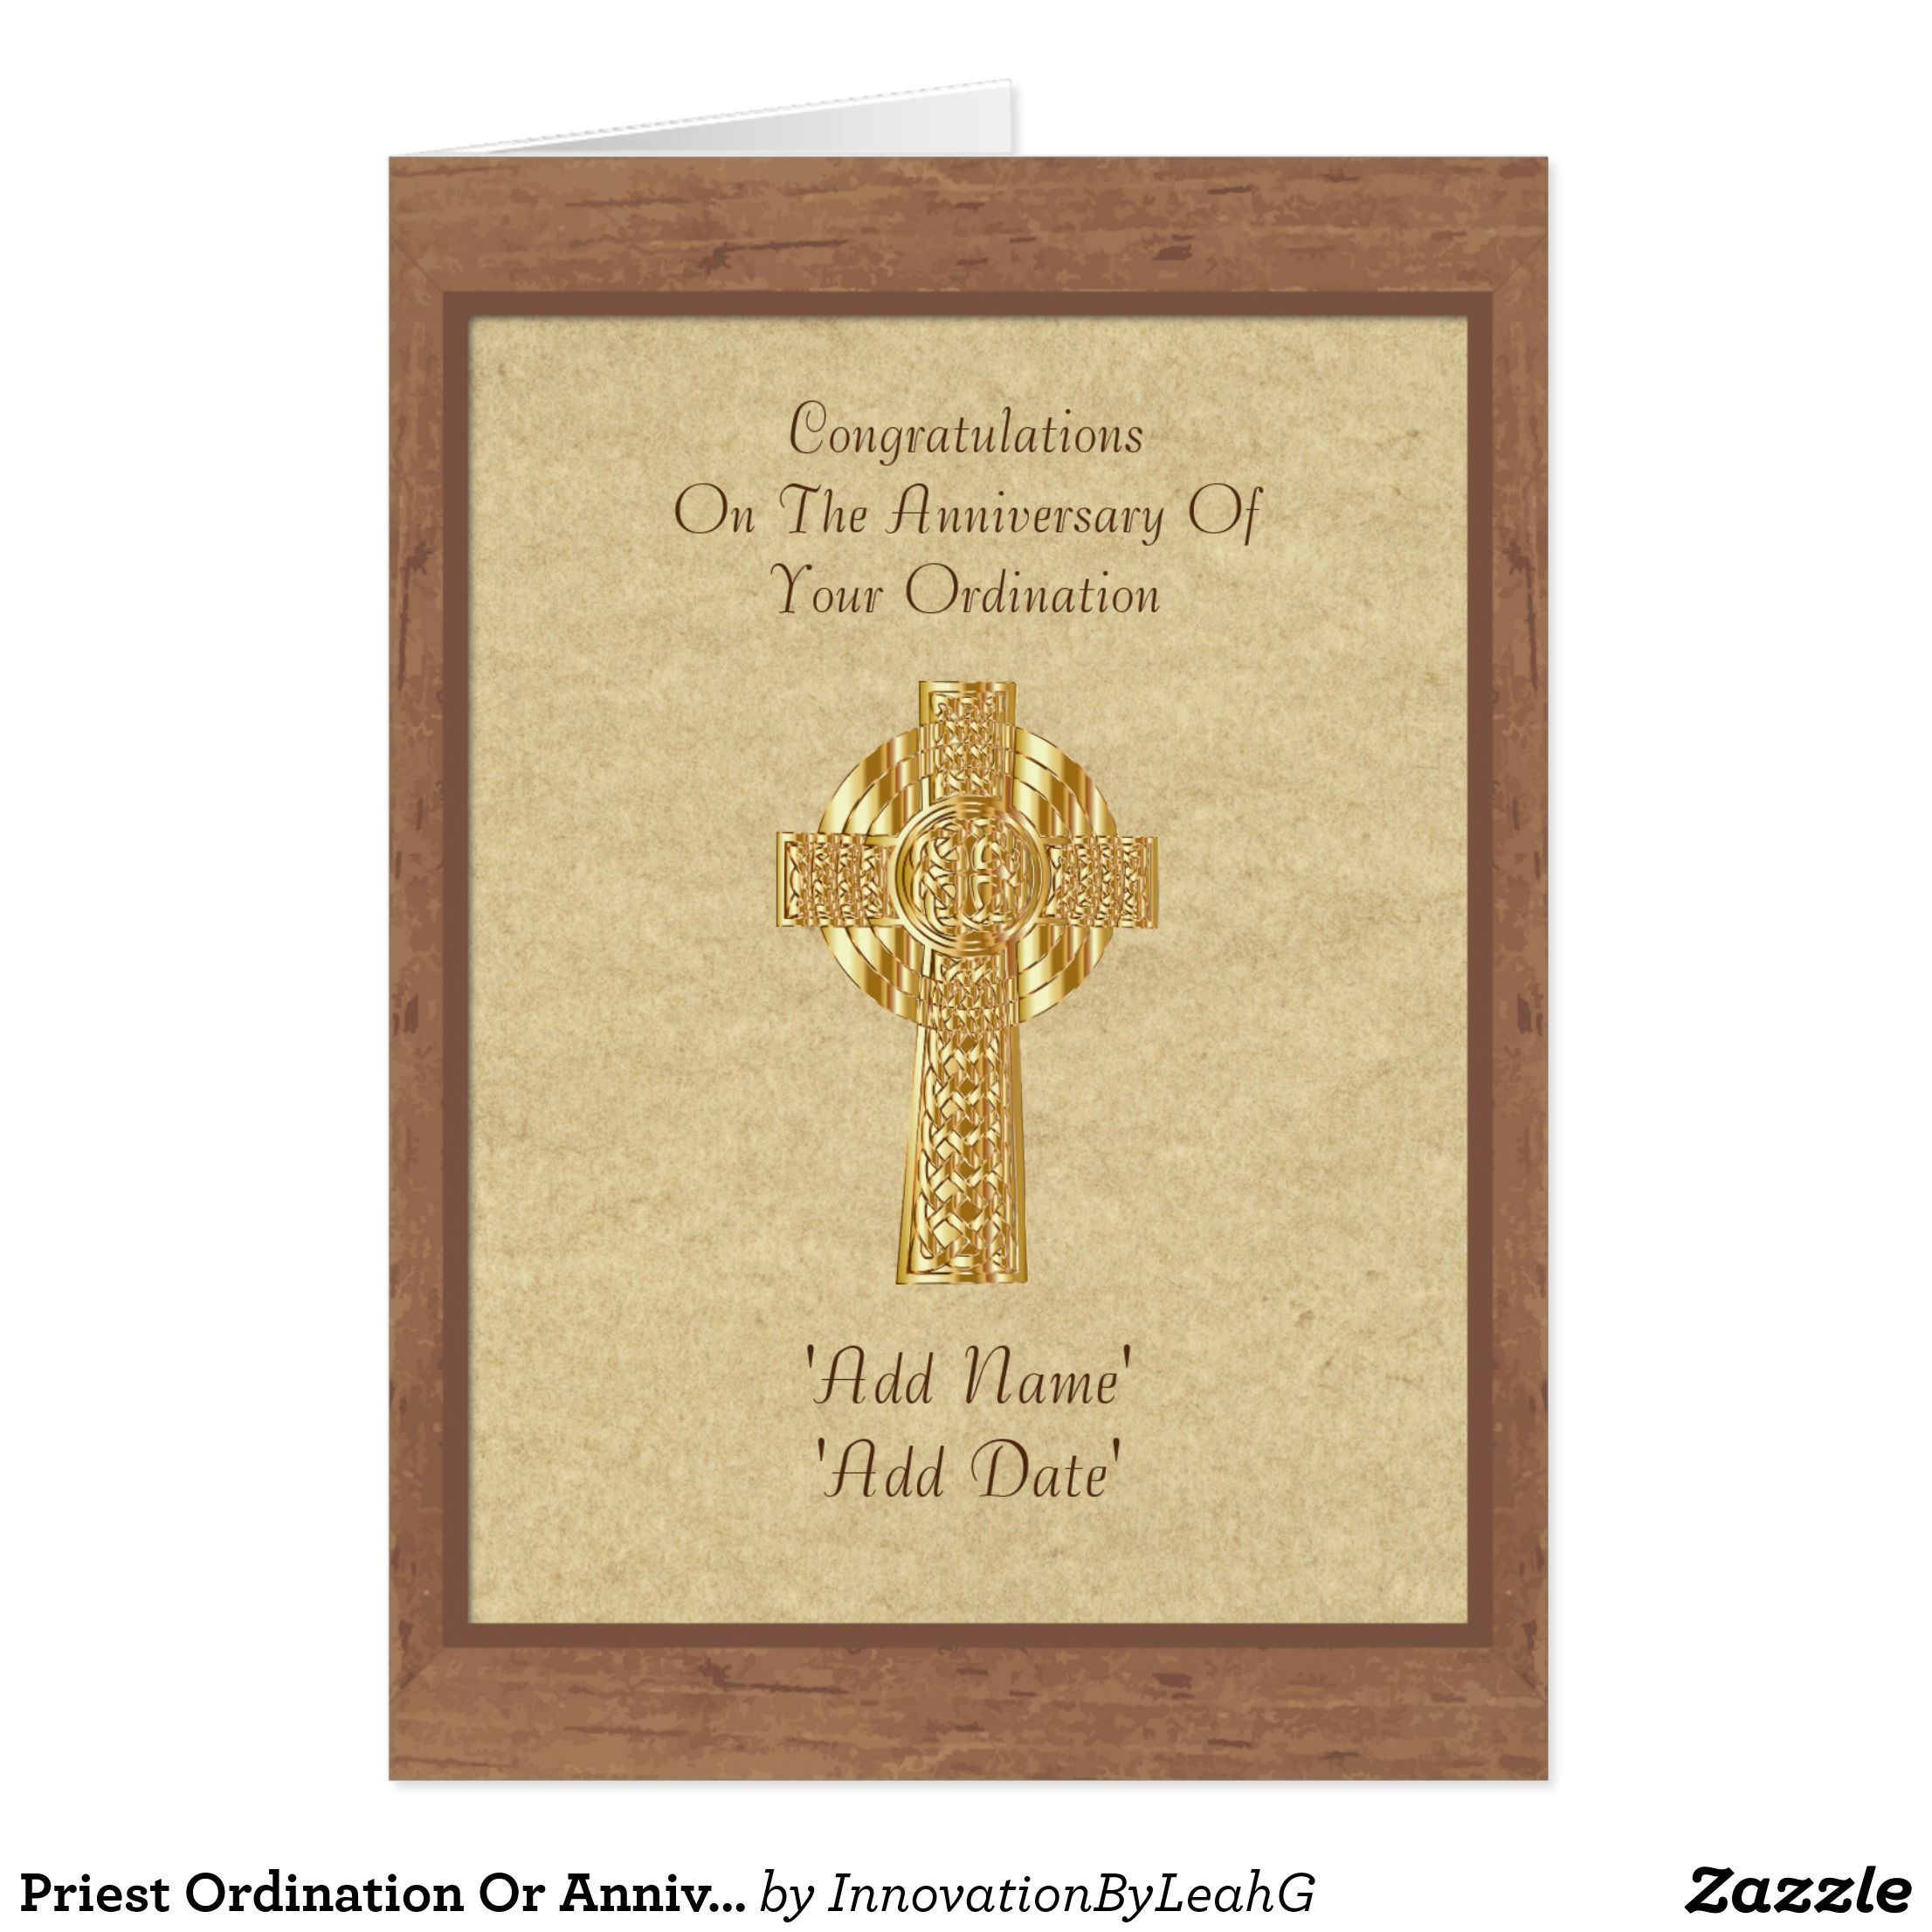 Priest Ordination Or Anniversary Card Personalized Abouna Jihad